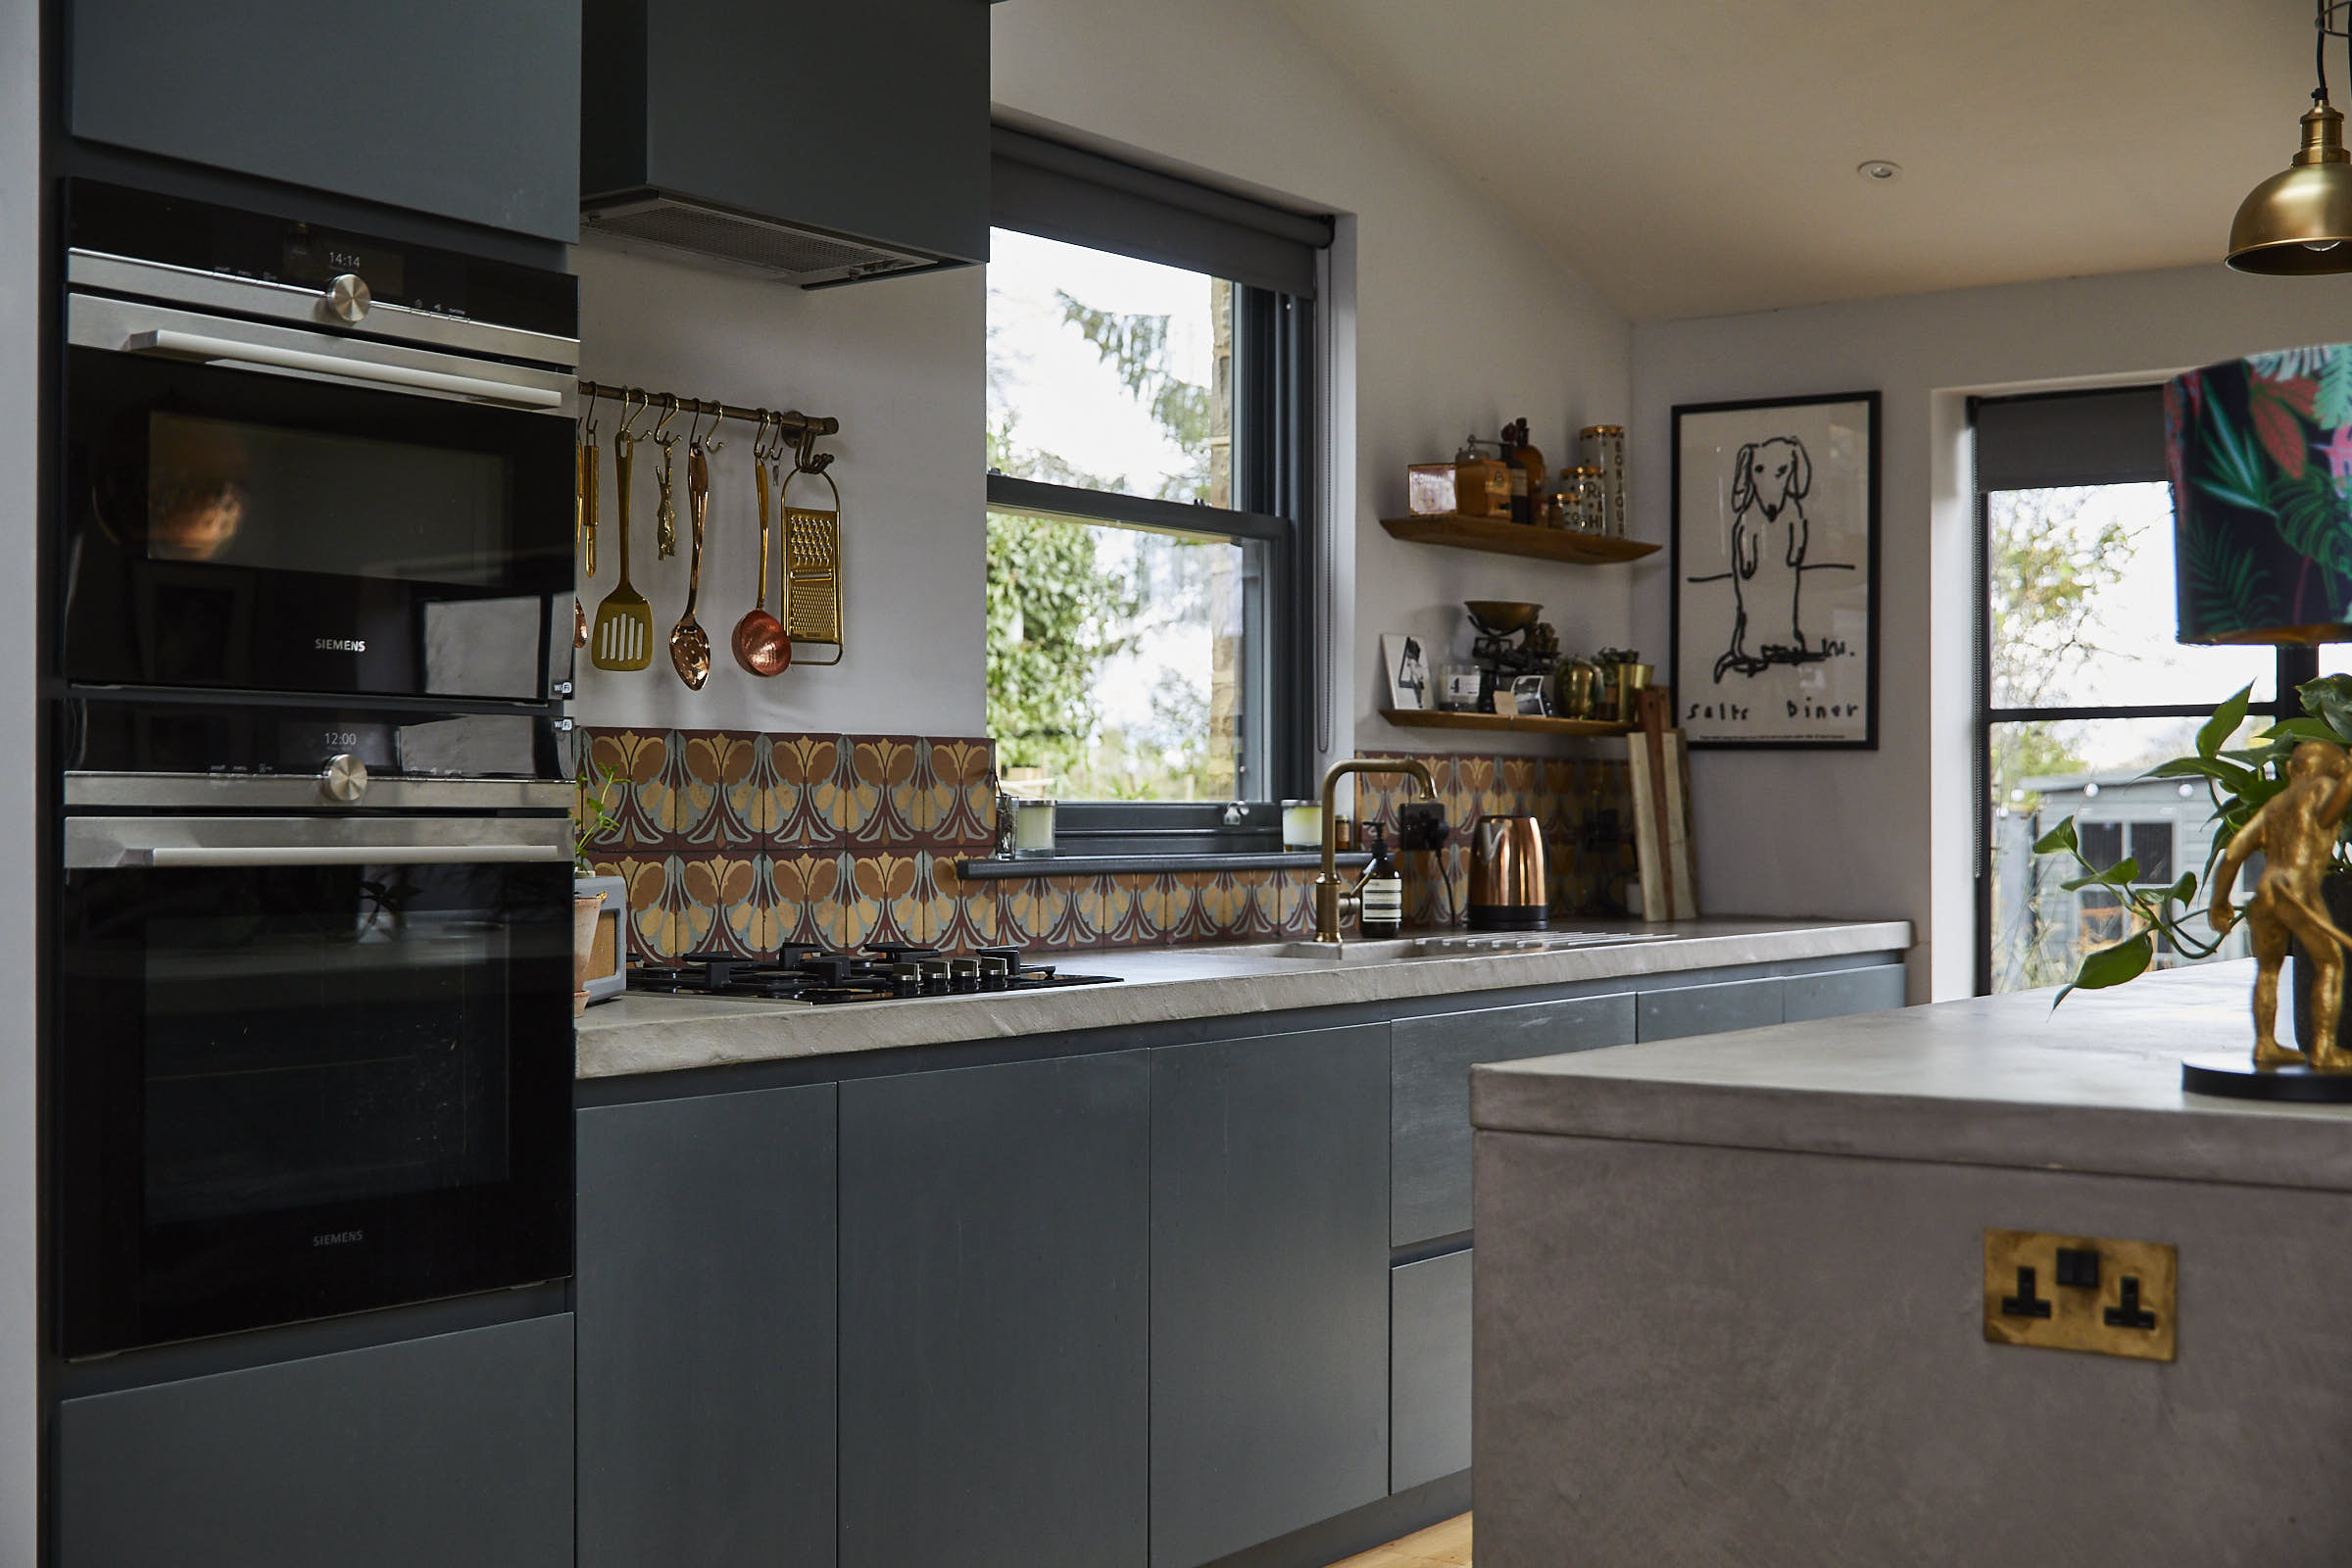 Bespoke painted kitchen with solid concrete worktops and colourful shell tiles